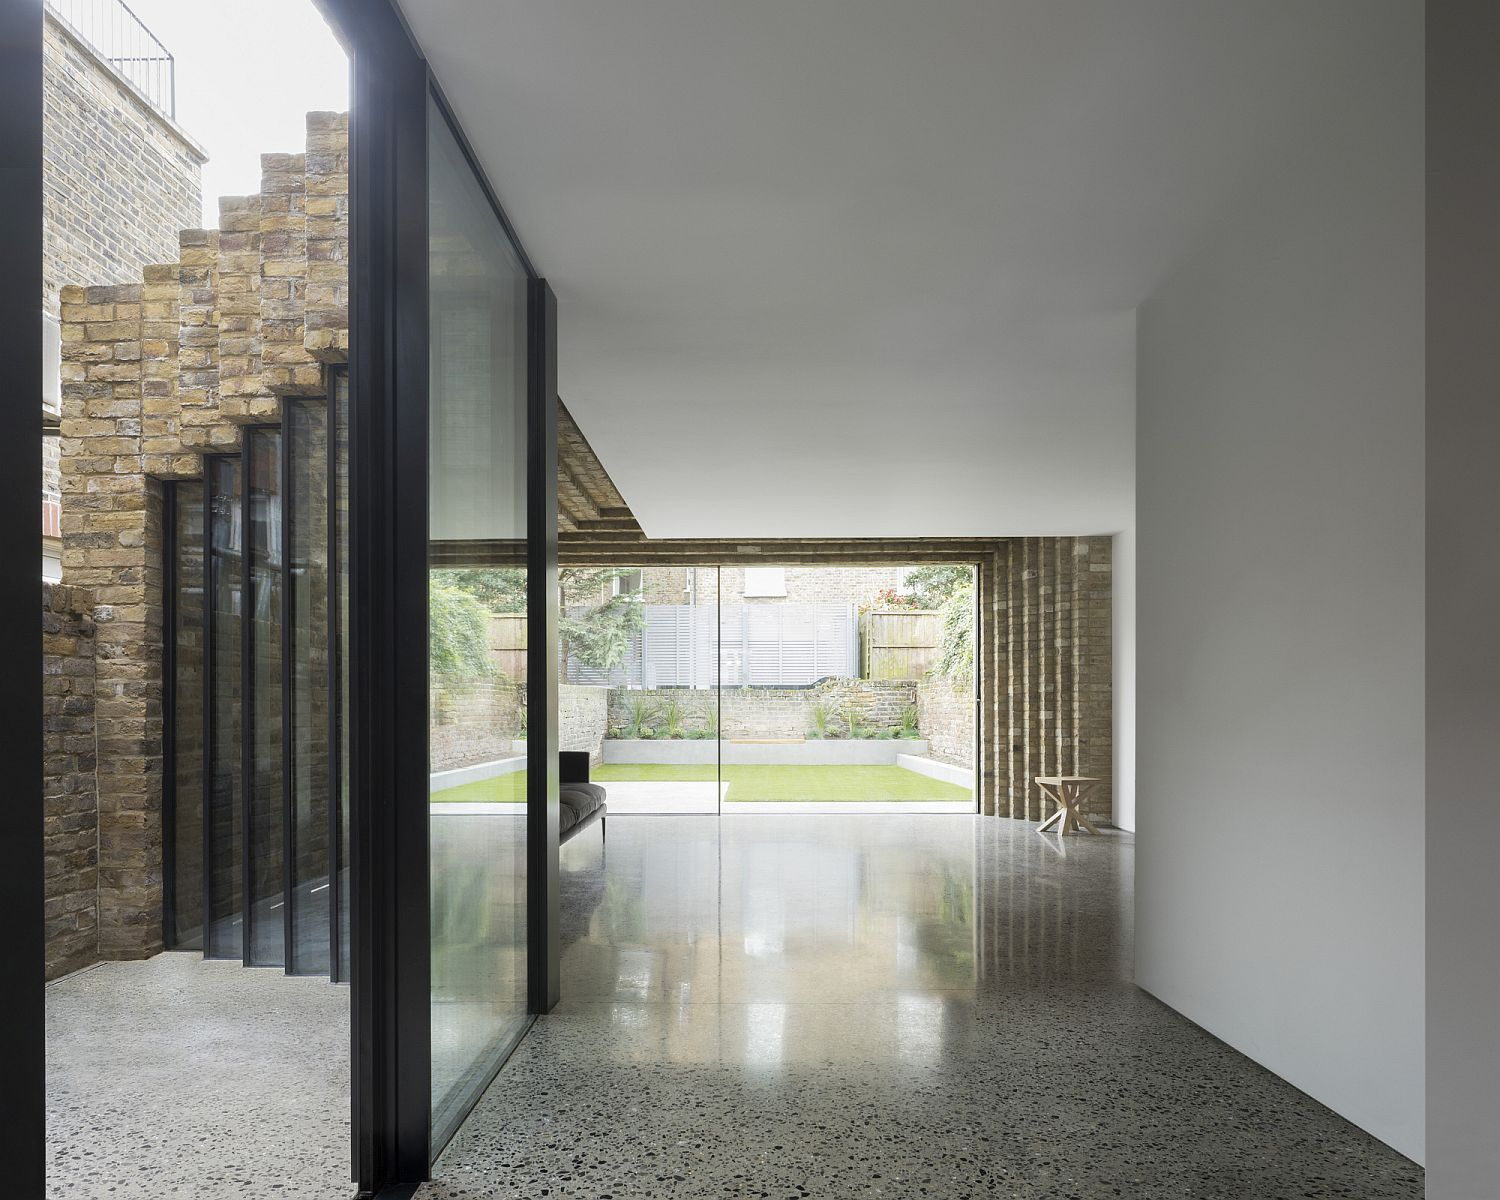 Sliding glass wall partition inside the house